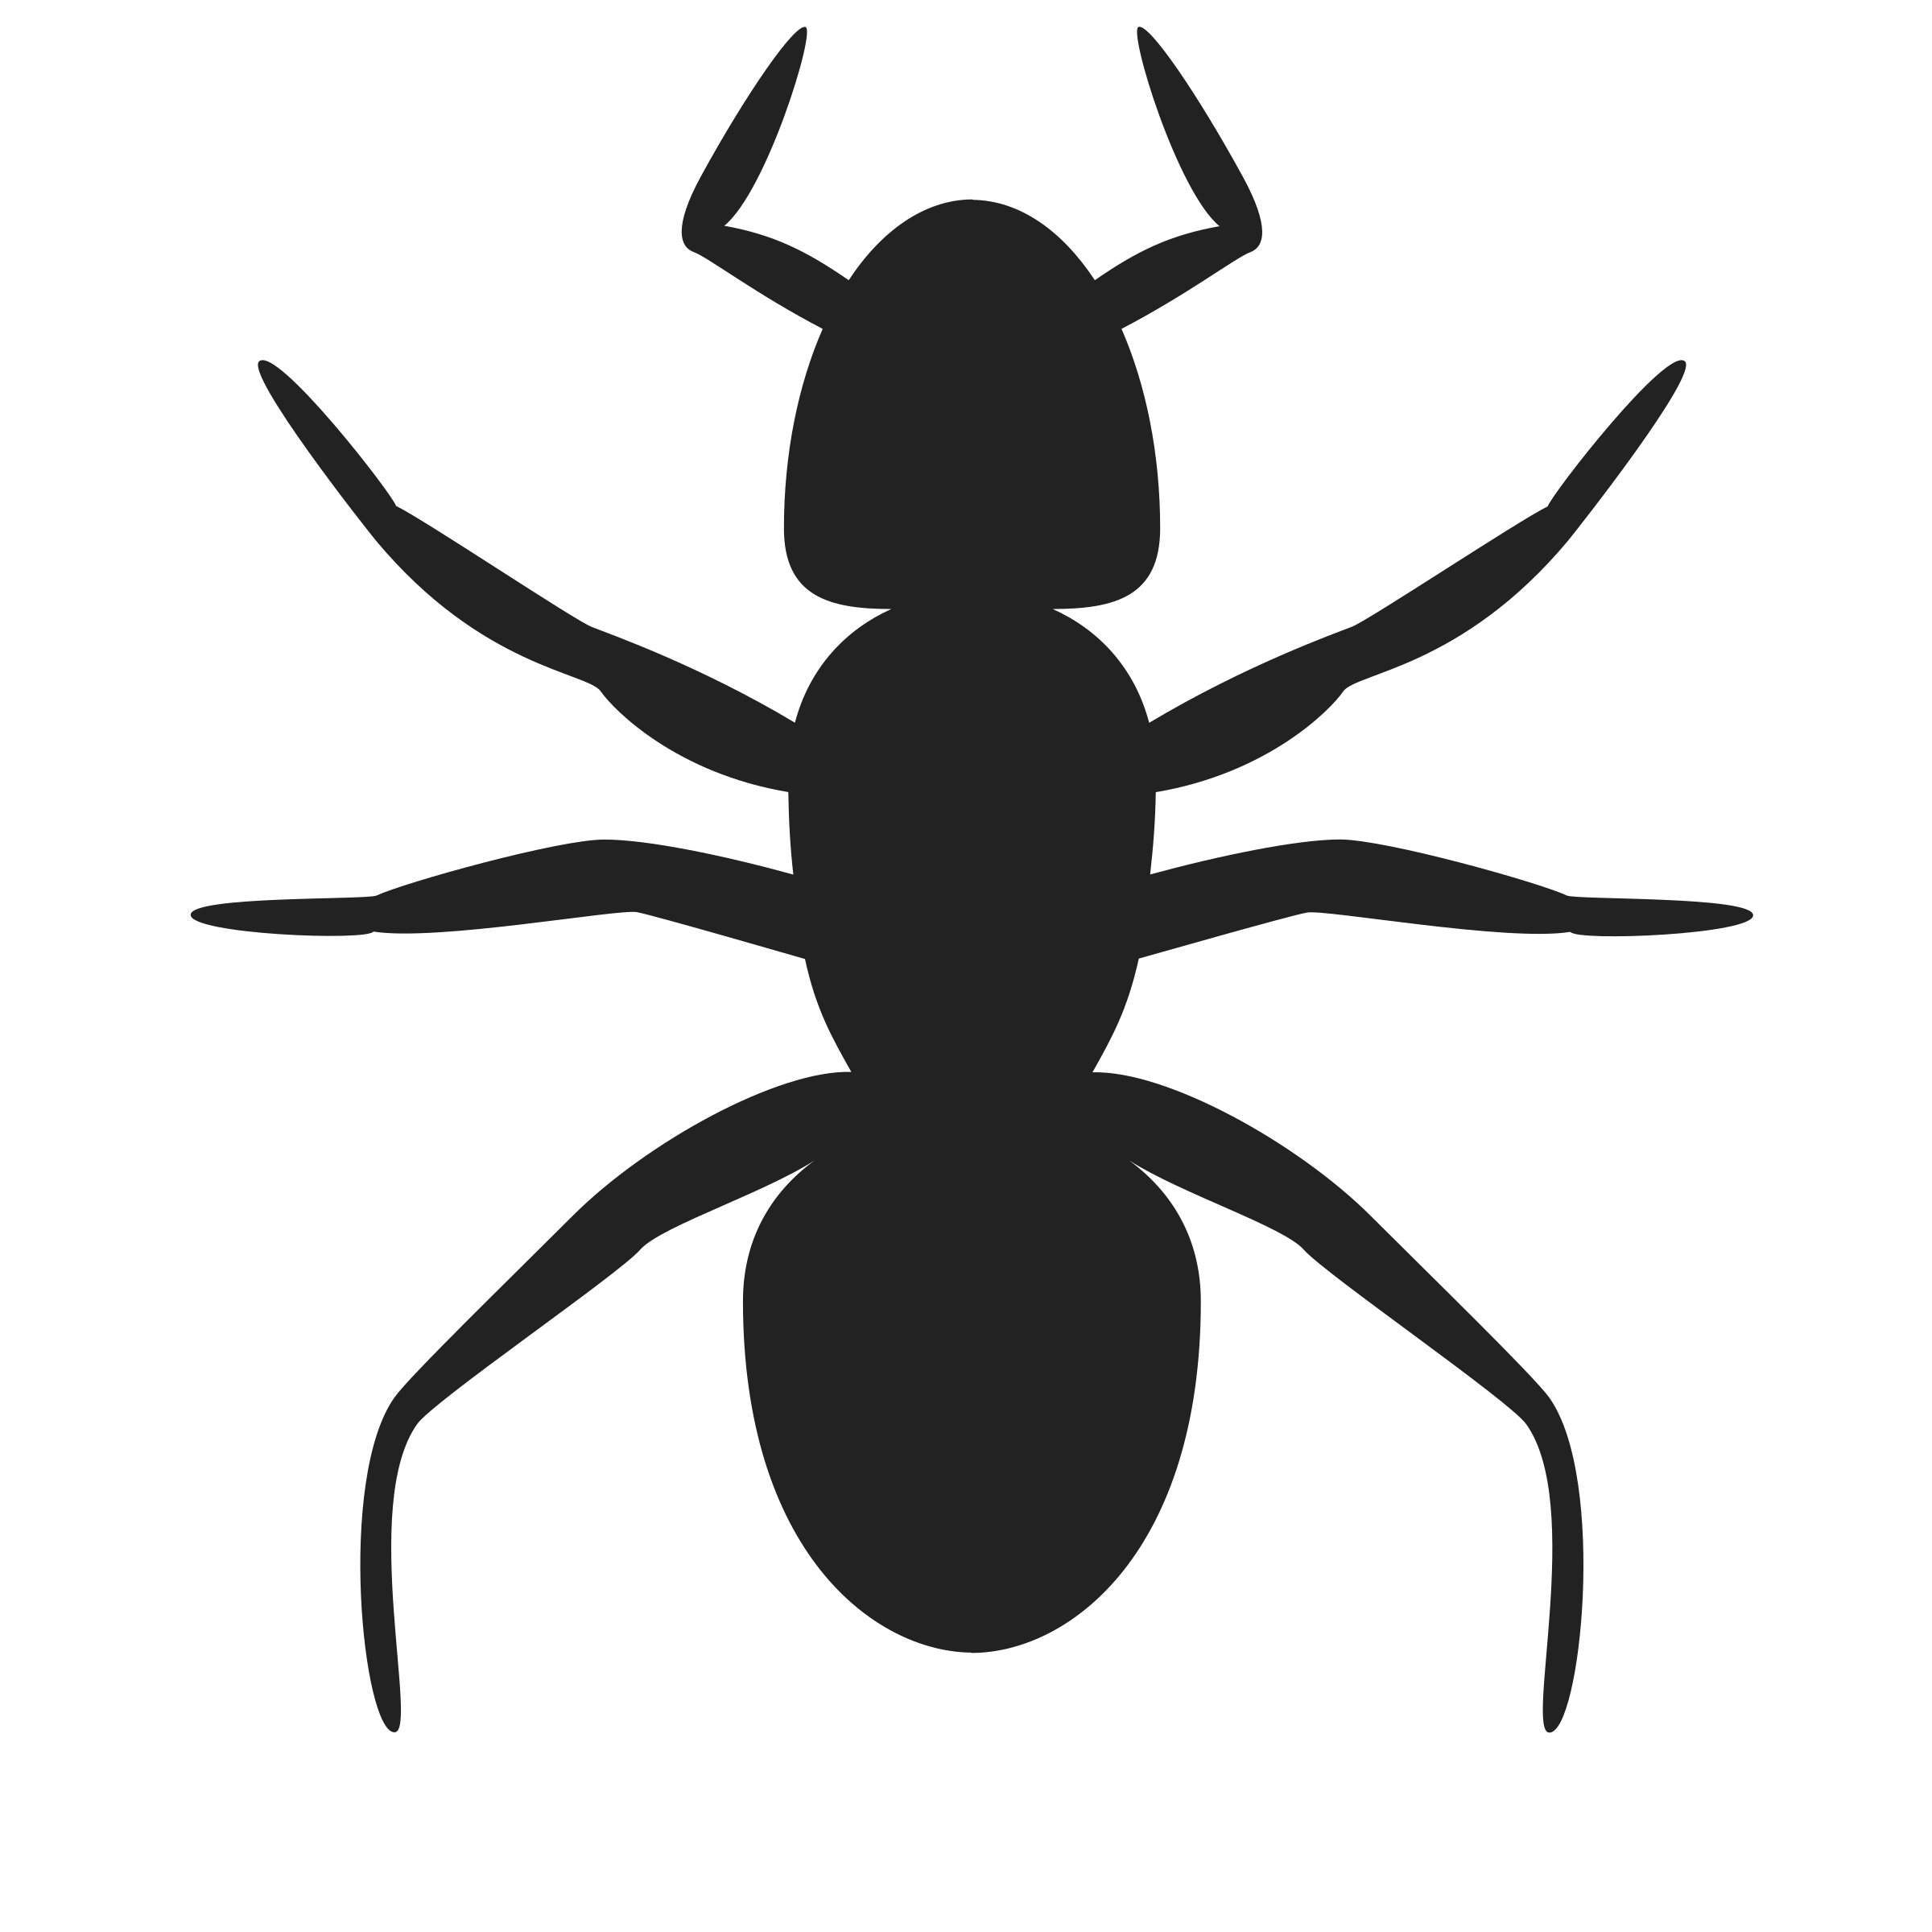 image black and white stock Picnic ants clipart. Ant icon big image